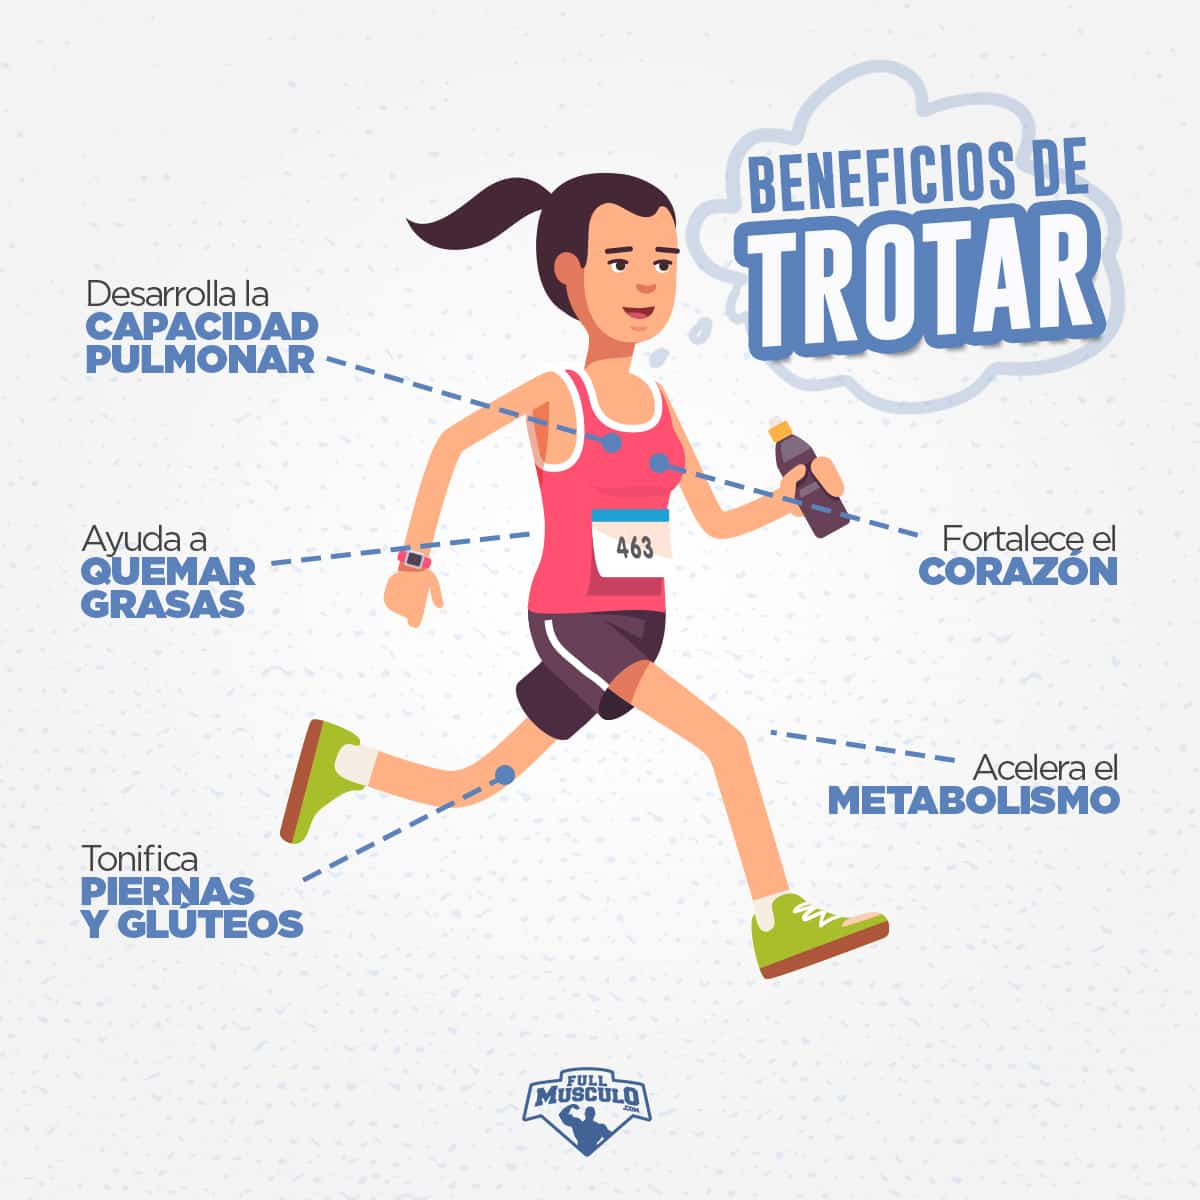 beneficios de trotar